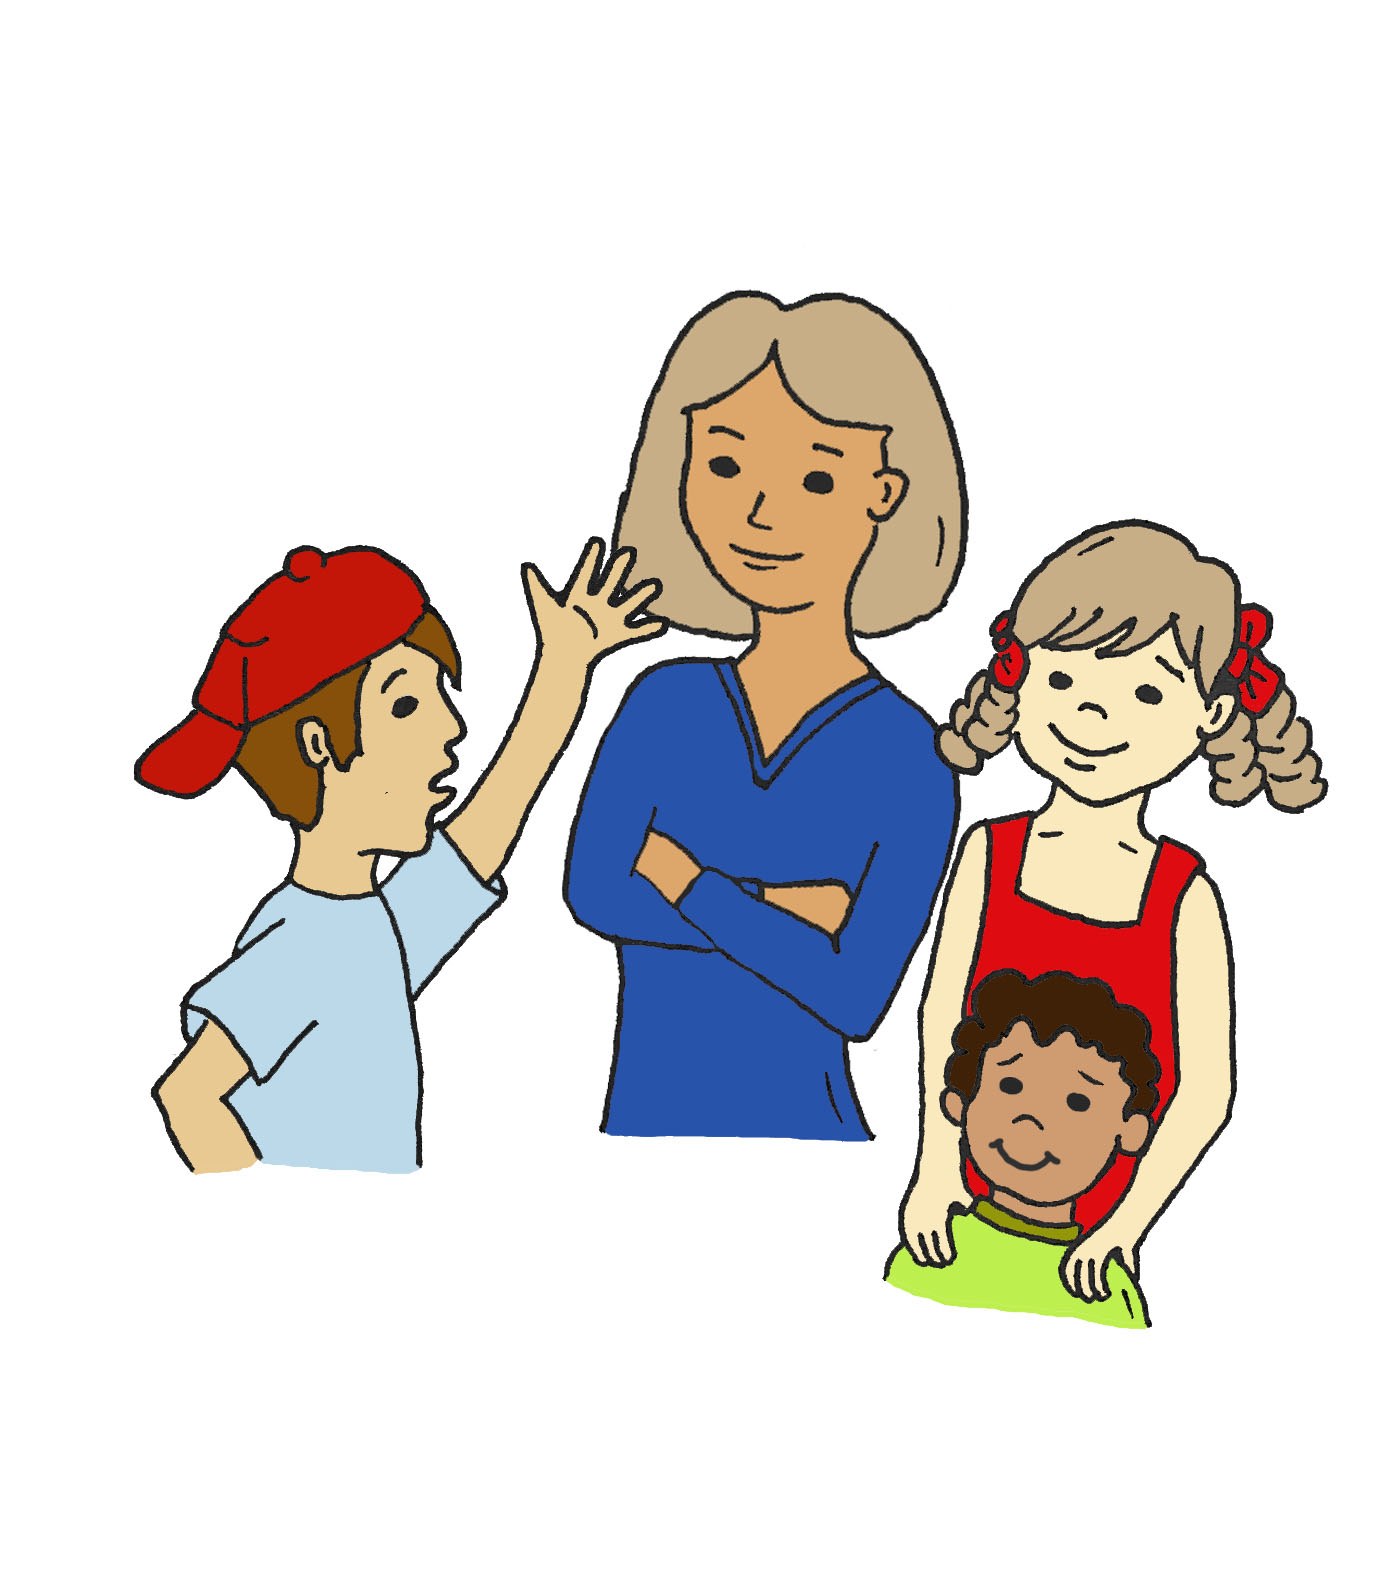 Children or adults clipart clipart images gallery for free.